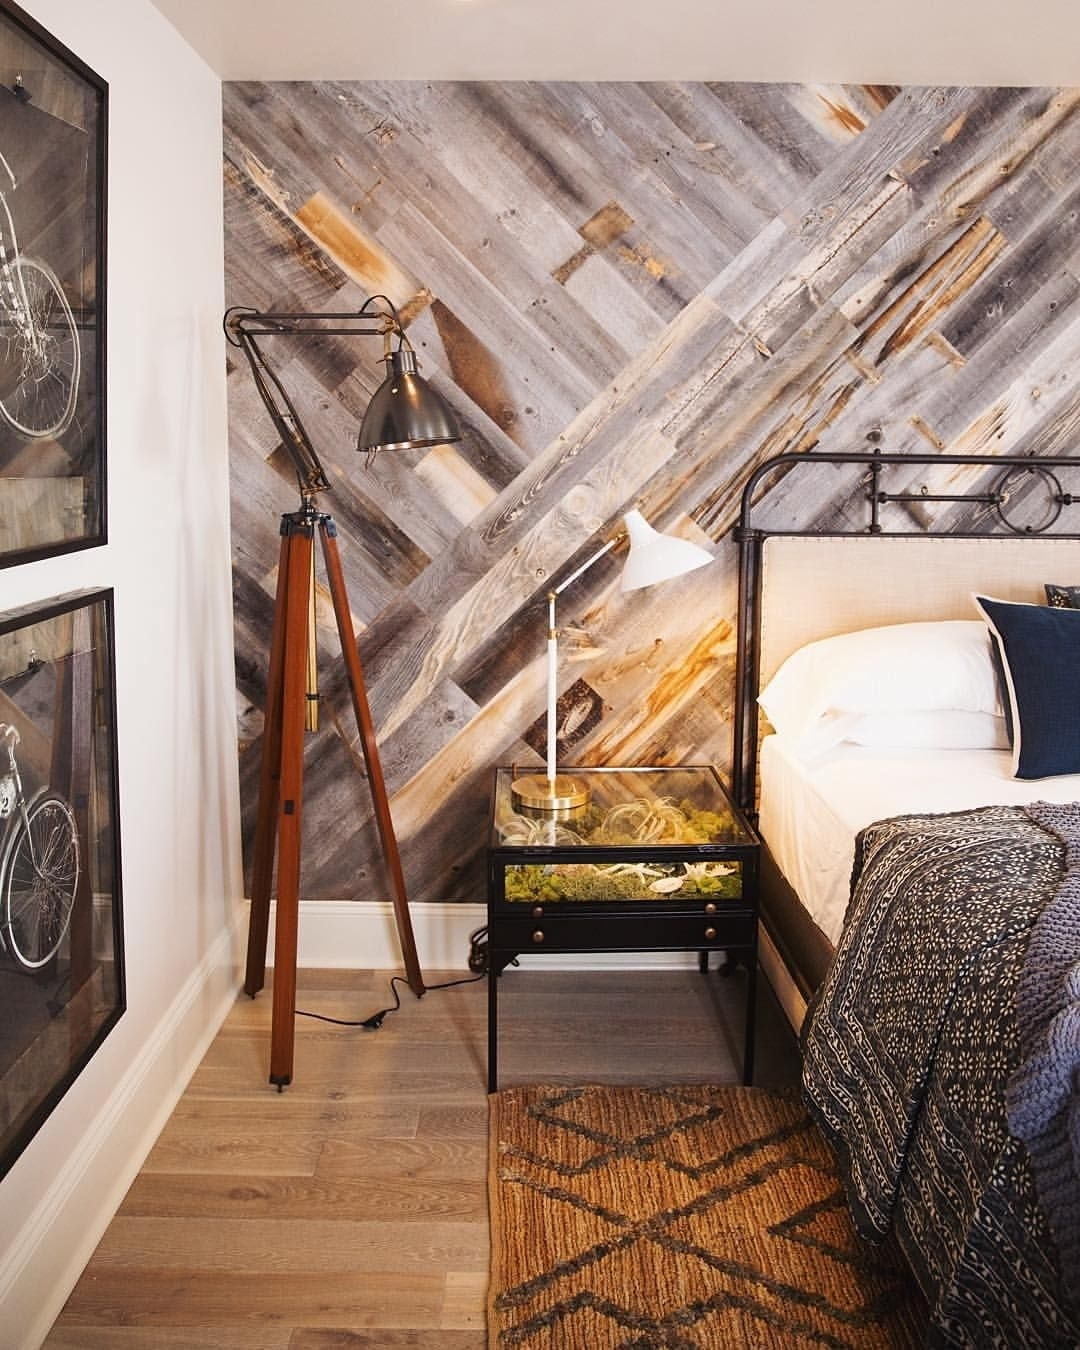 Diy Easy Peel And Stick Wood Wall Decor | Wood Walls, Reclaimed Pertaining To Current Wall Accents Made From Pallets (View 7 of 15)